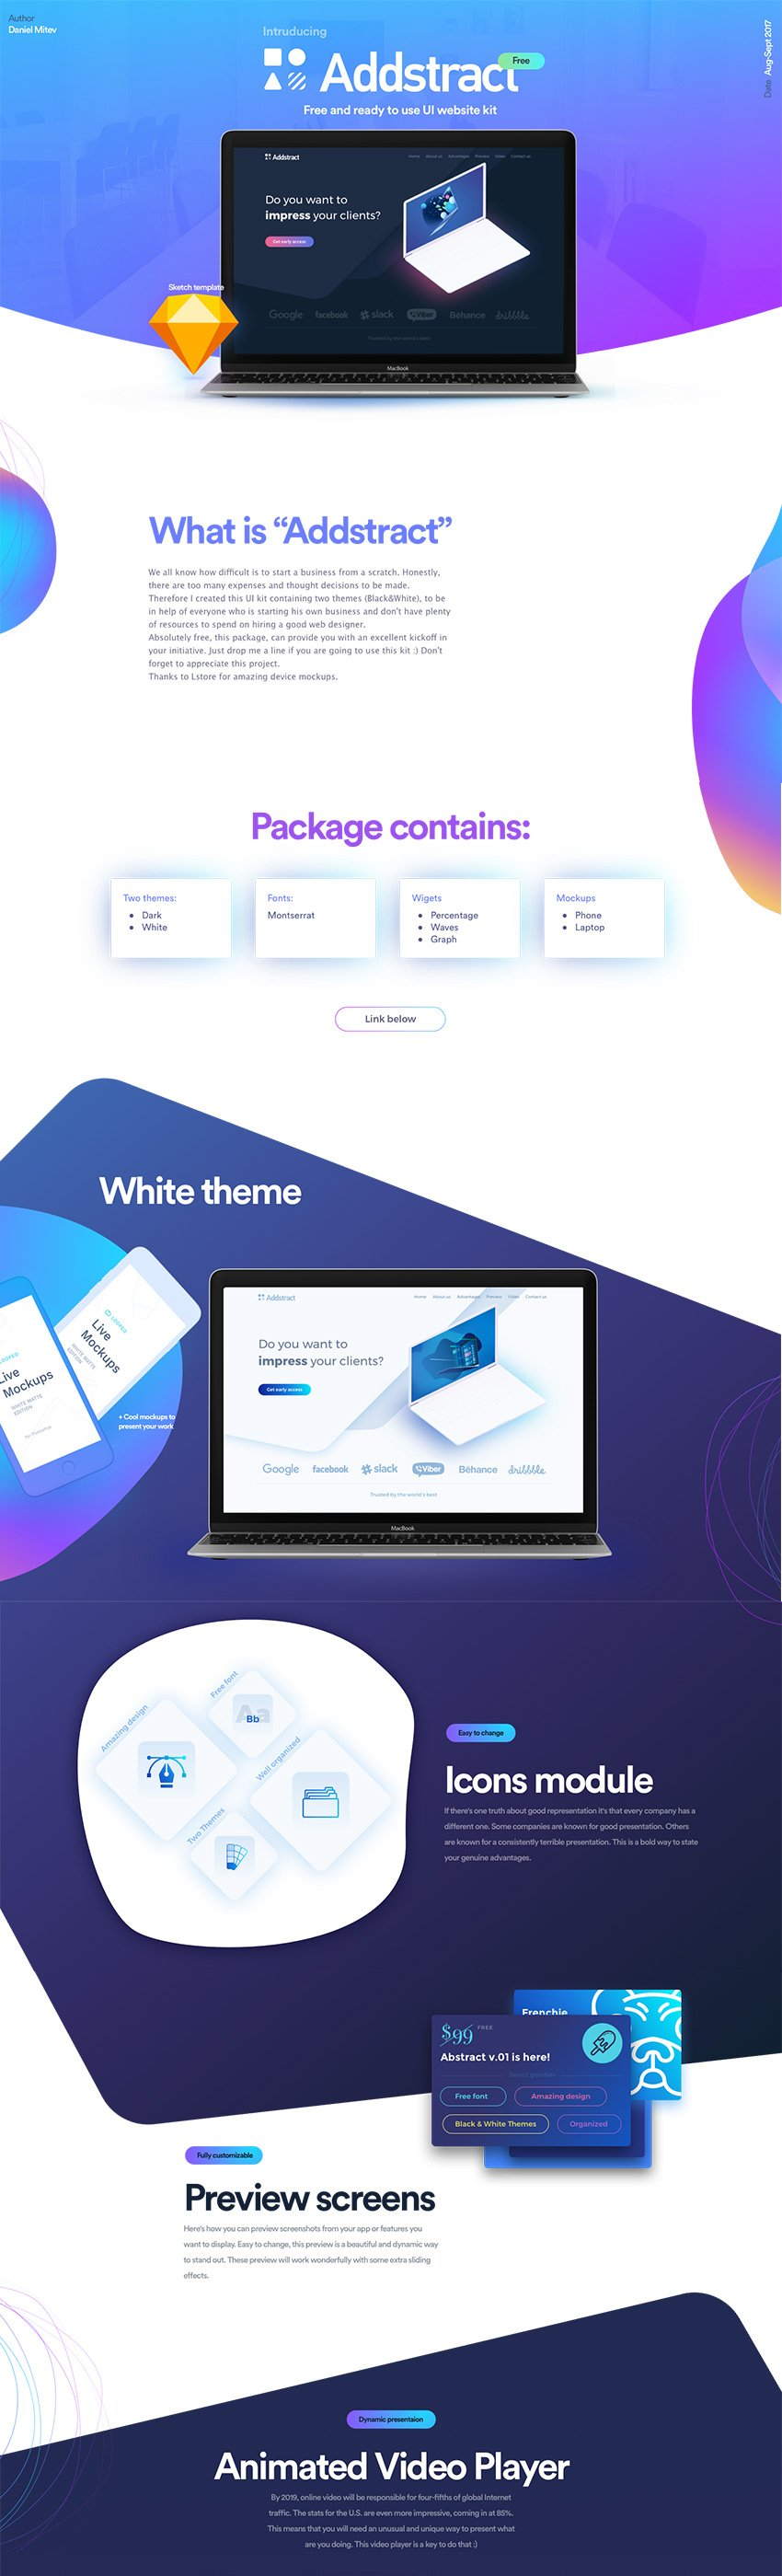 Addstract Free Web UI Kit 1 for Web Designers